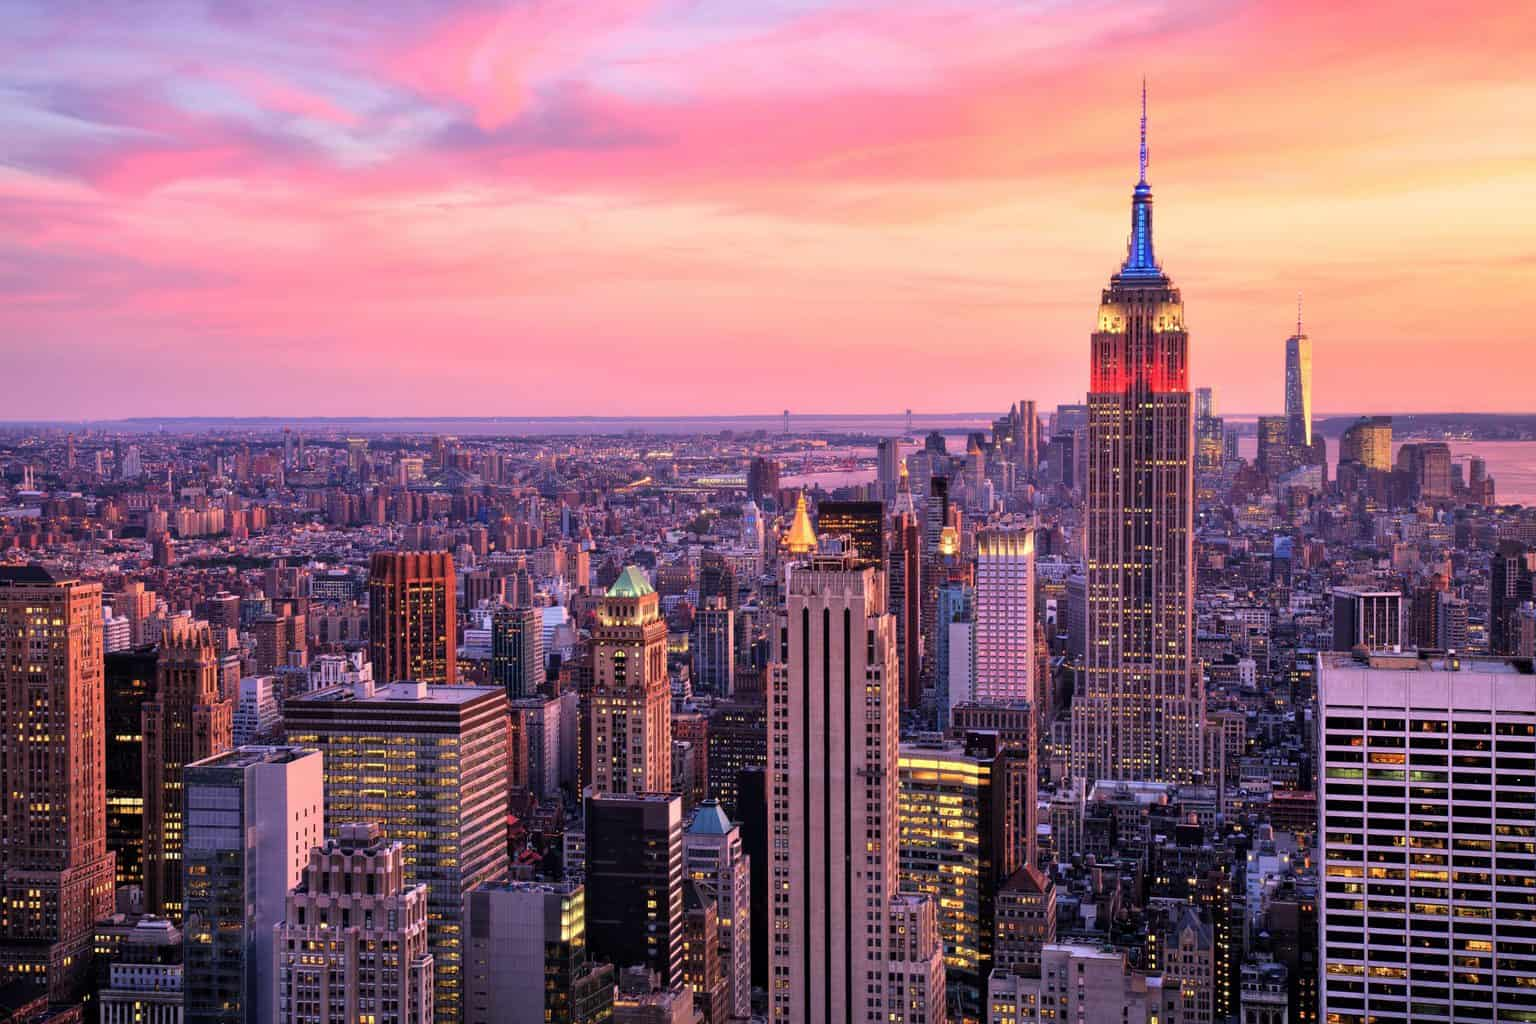 An aerial view of the empire state building lit up at sunset.